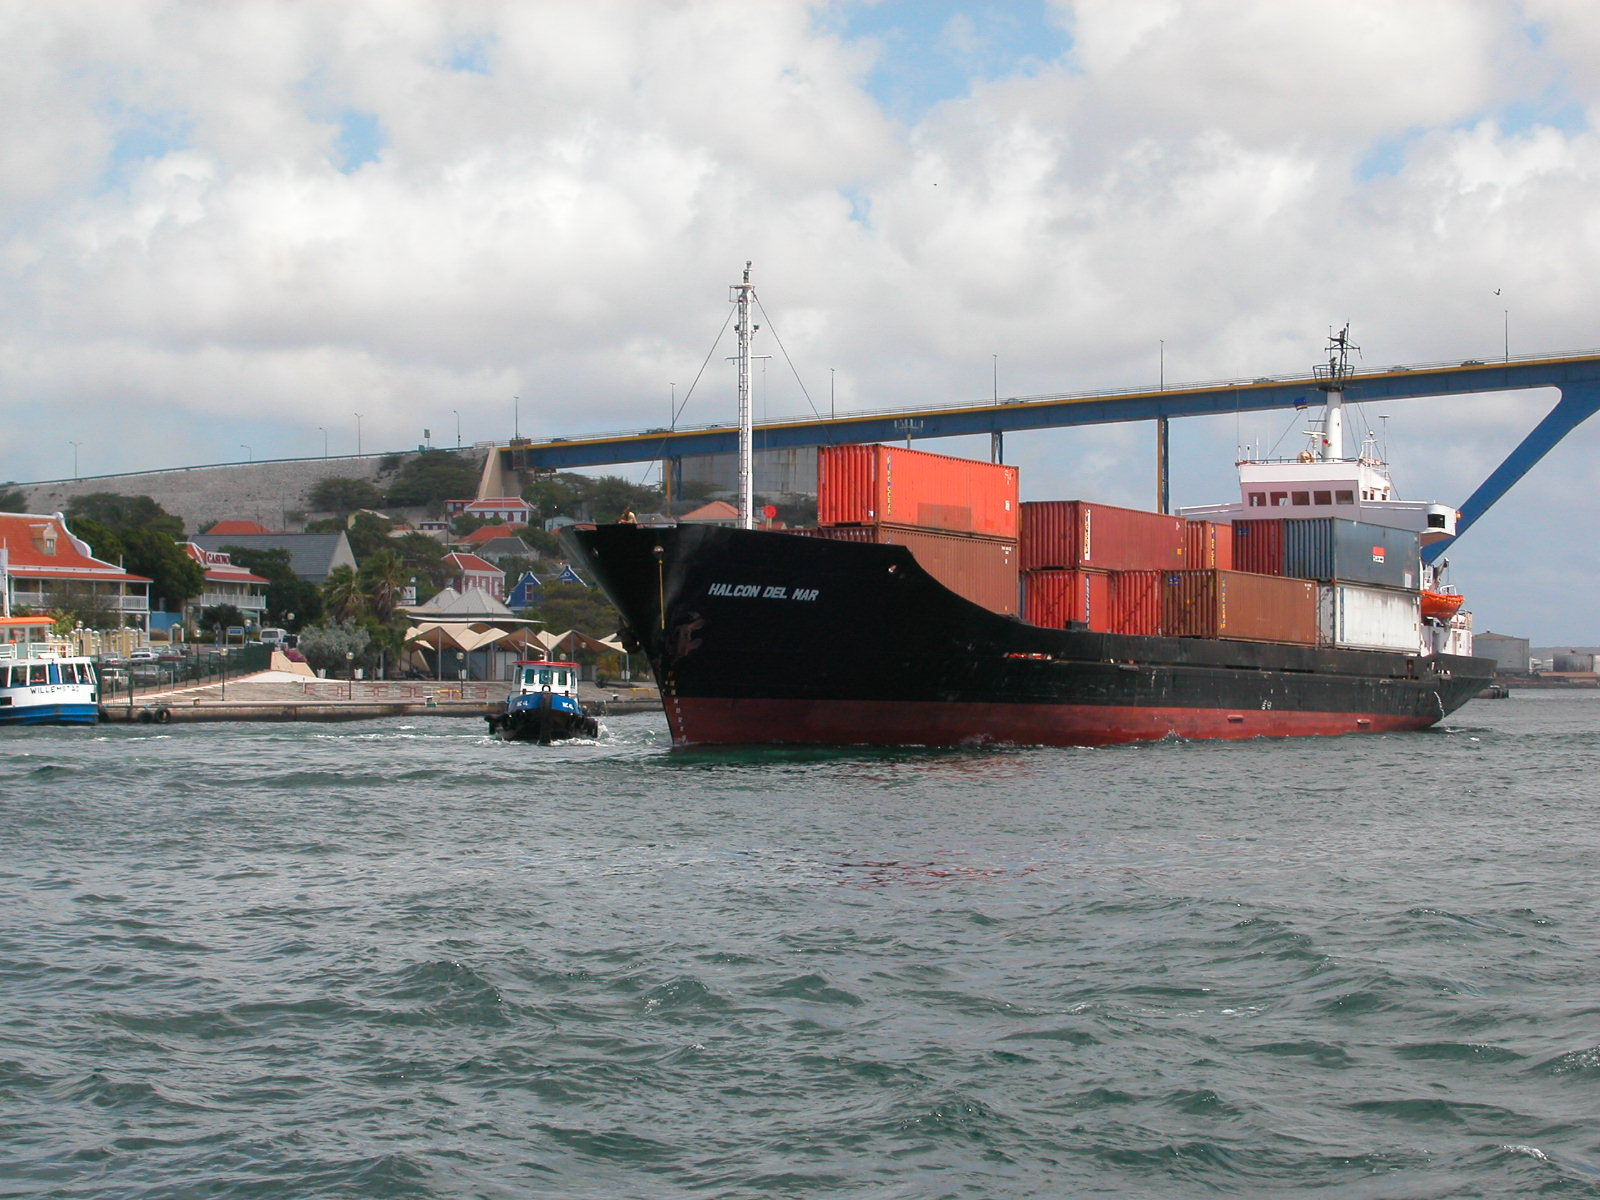 jacco water port harbor harbour ship freight tanker malcon del mar transport transporting